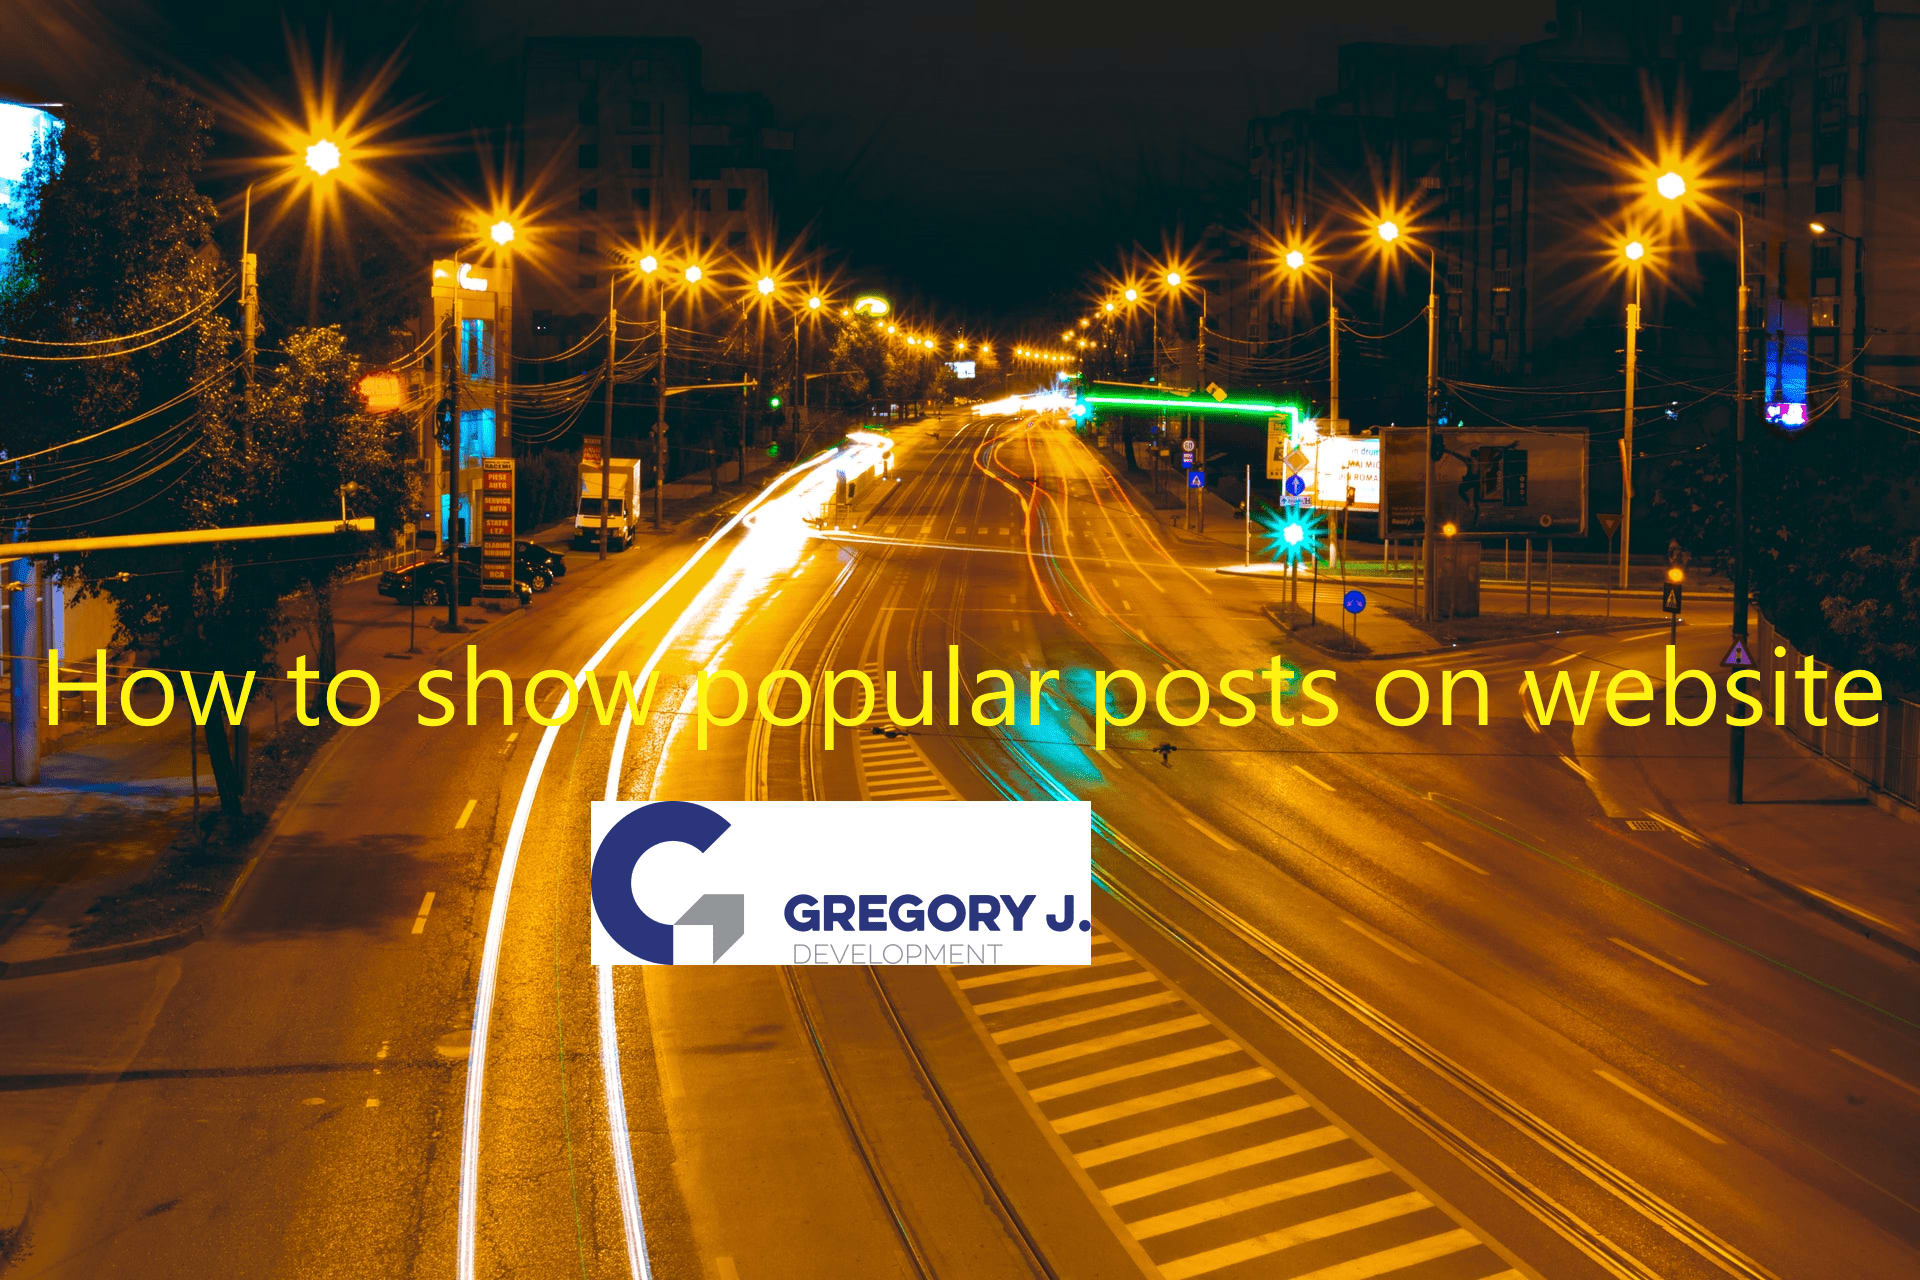 How to show popular posts on website